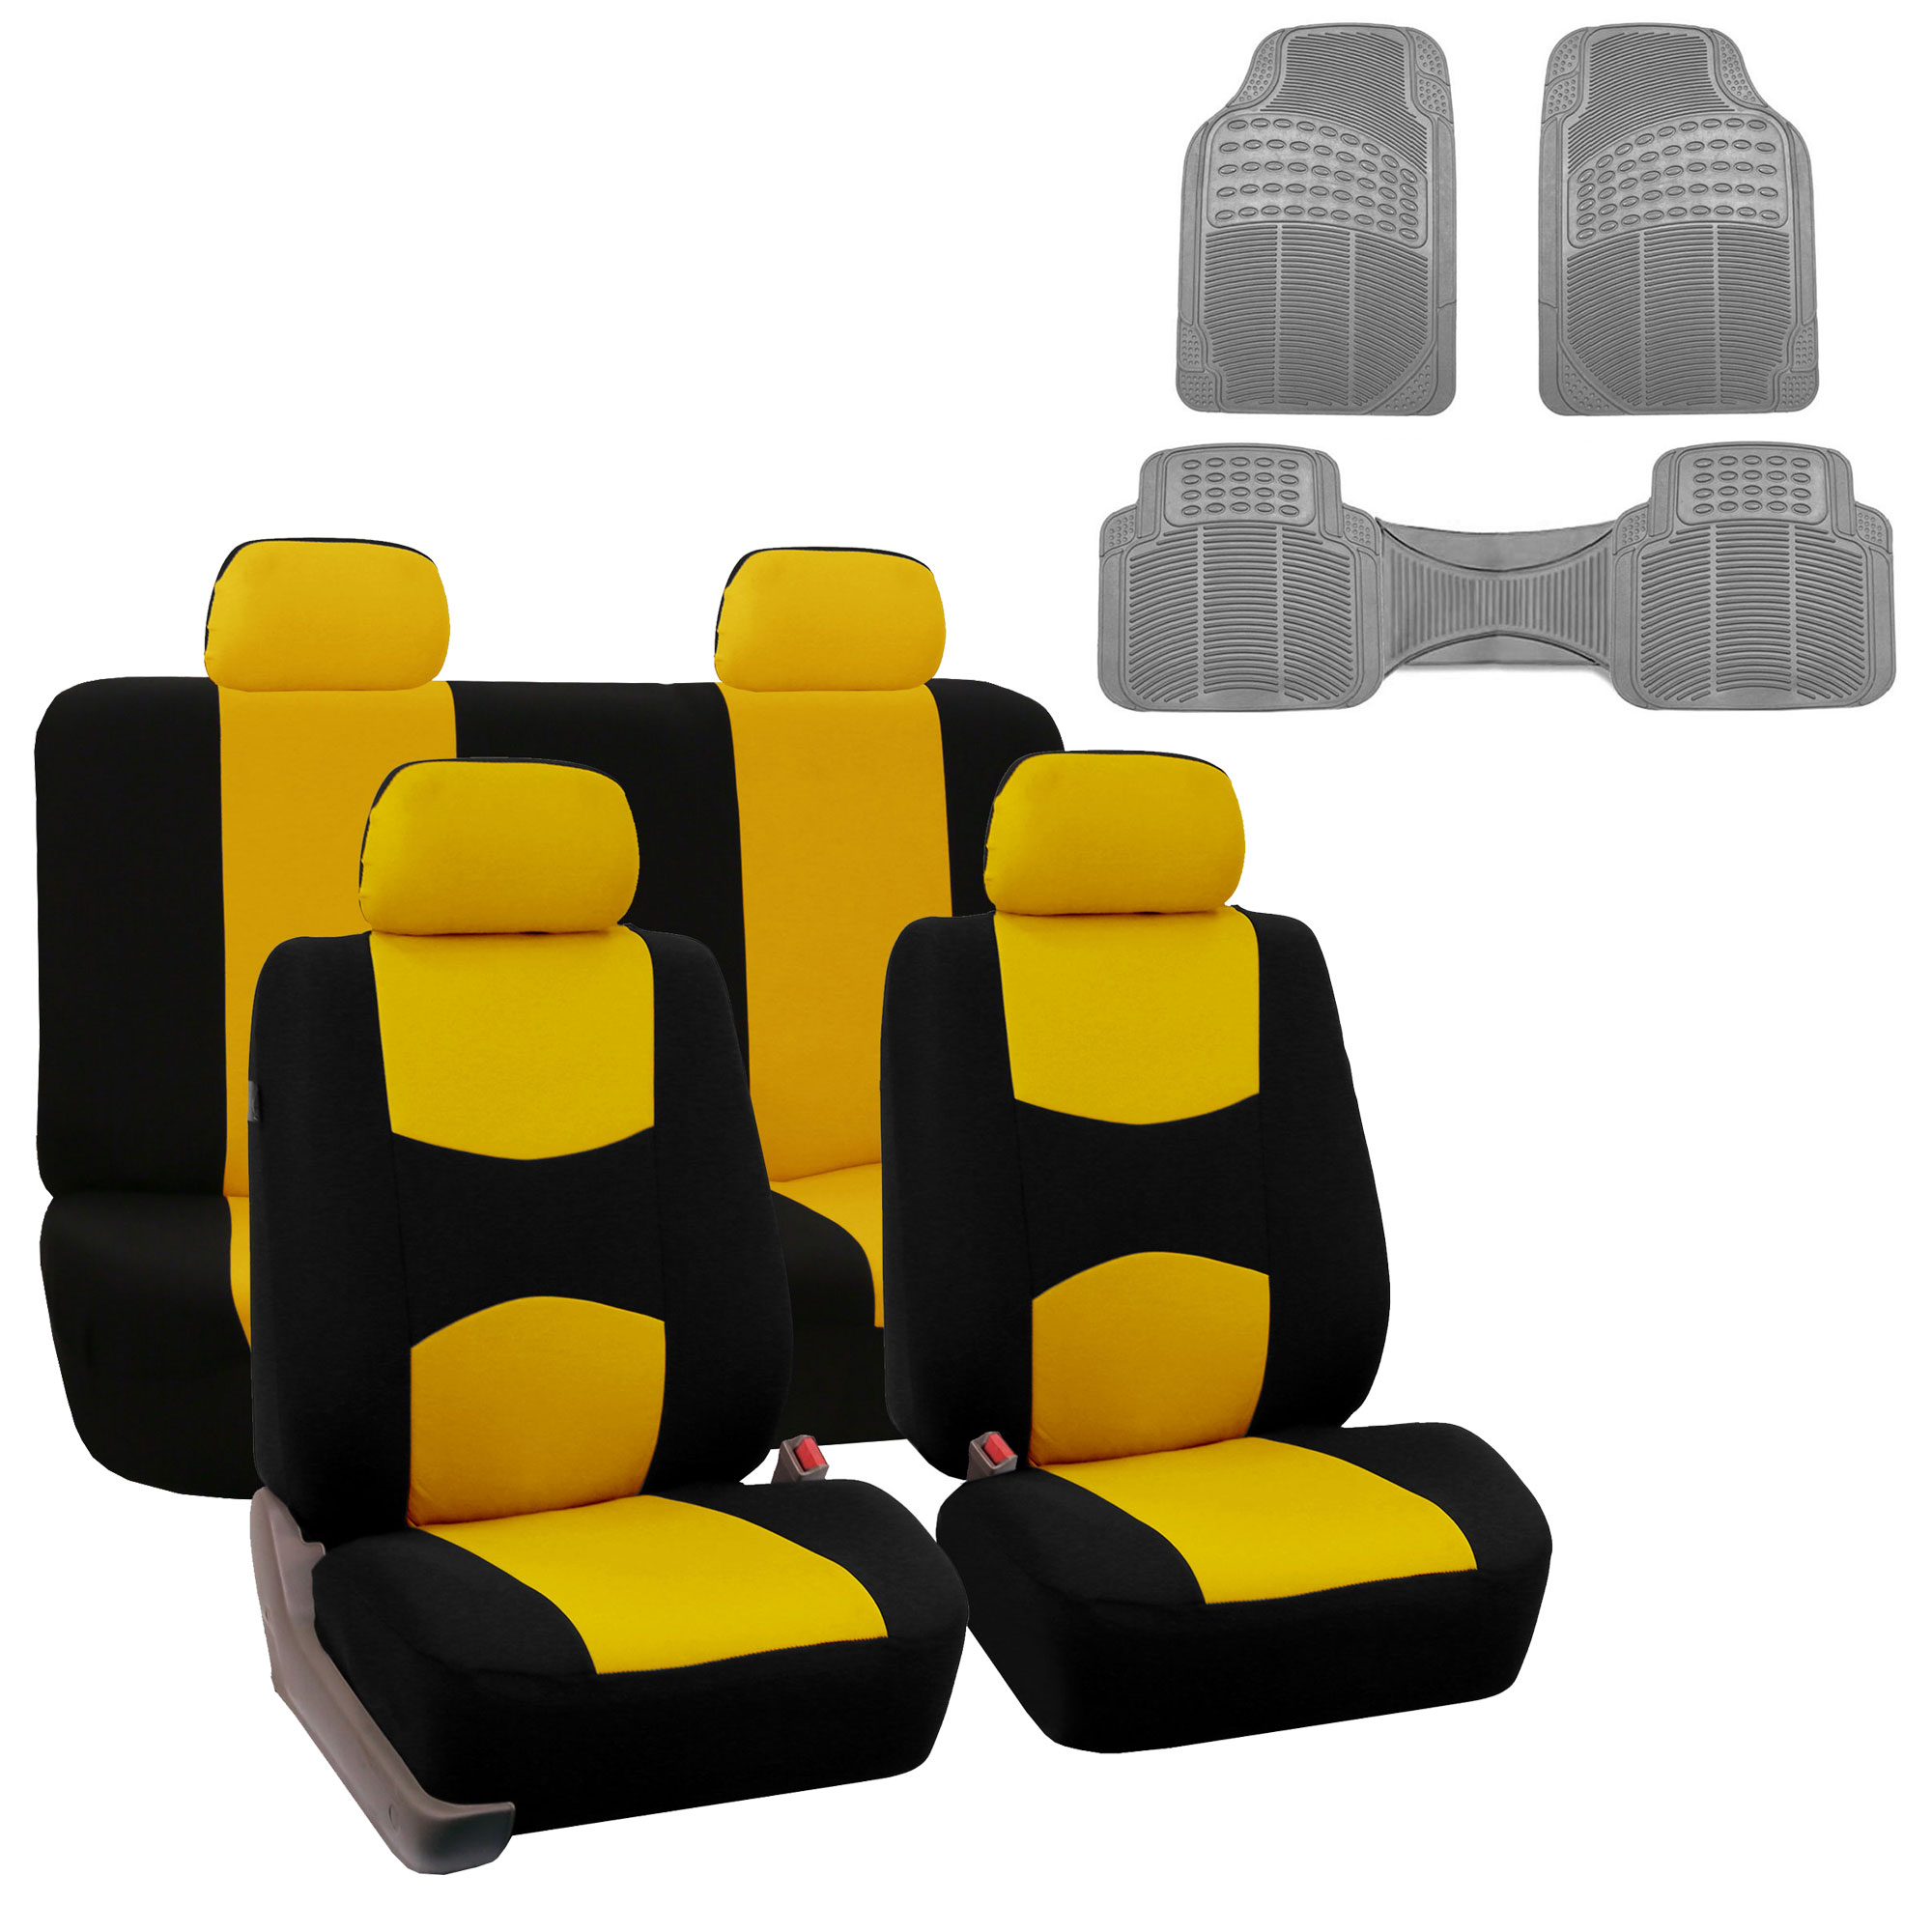 Car Seat Cover Full Set For For Auto Car SUV Truck Van w/ Floor Mat Yellow